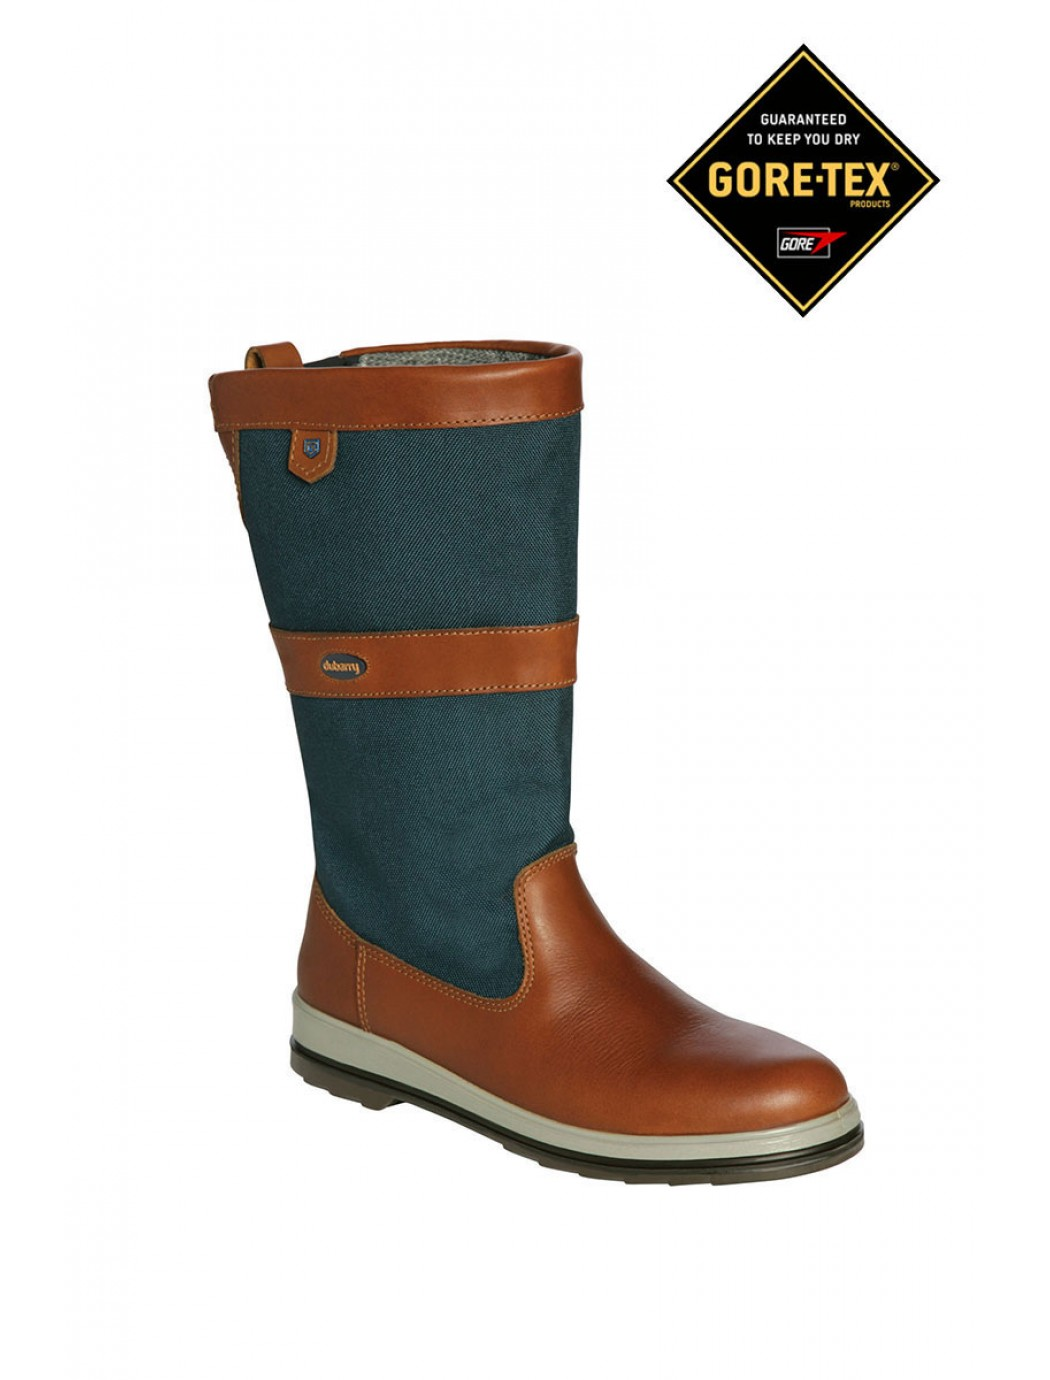 shamrock-sailing-boots-brown-navy 2